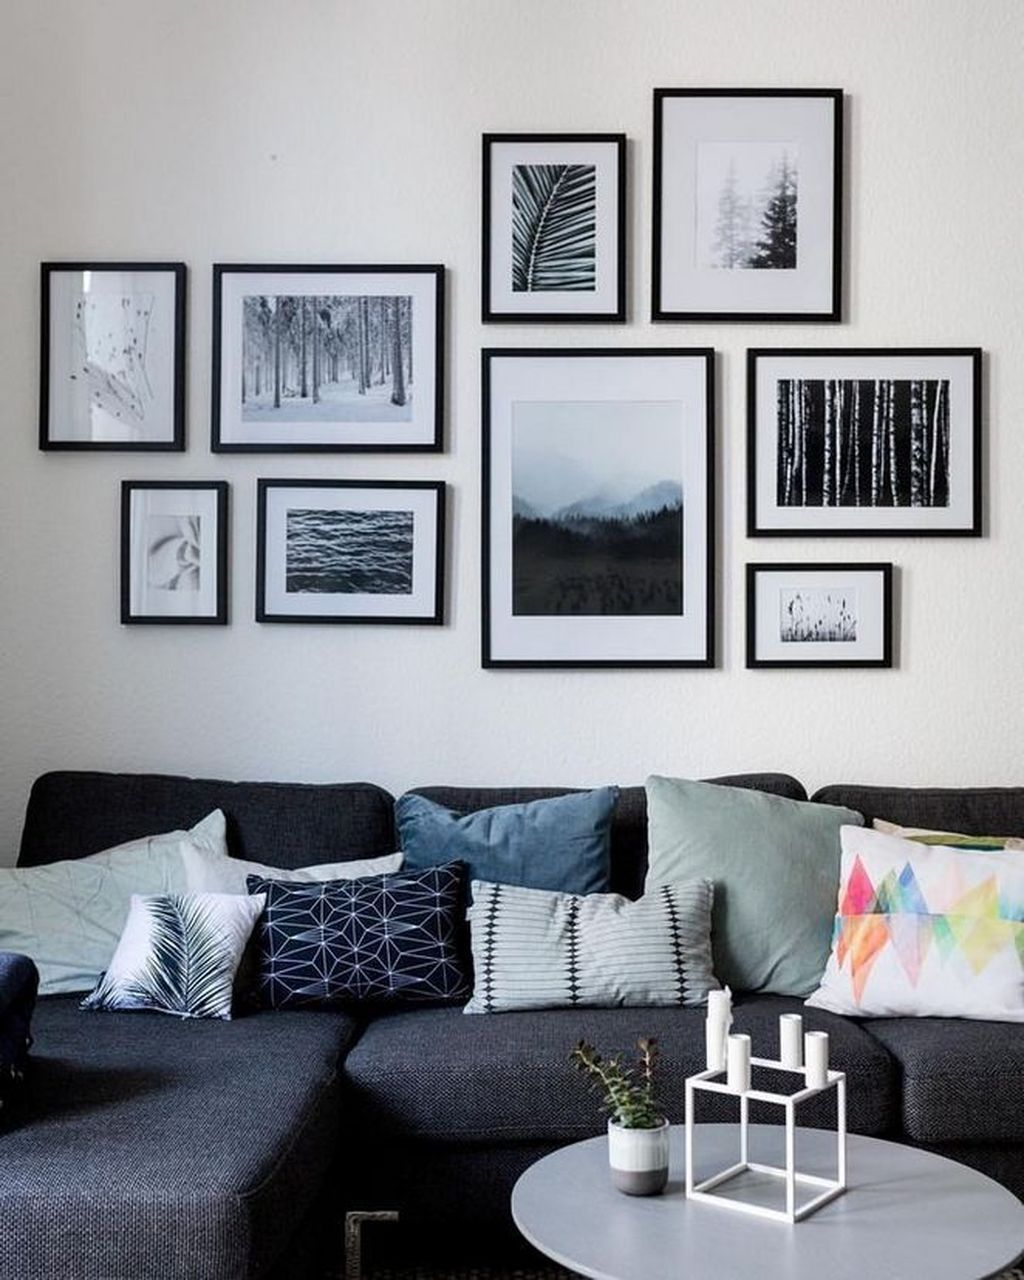 50 The Best Living Room Decorating Ideas Trends 2019 Wall Decor Living Room Gallery Wall Living Room Room Wall Decor